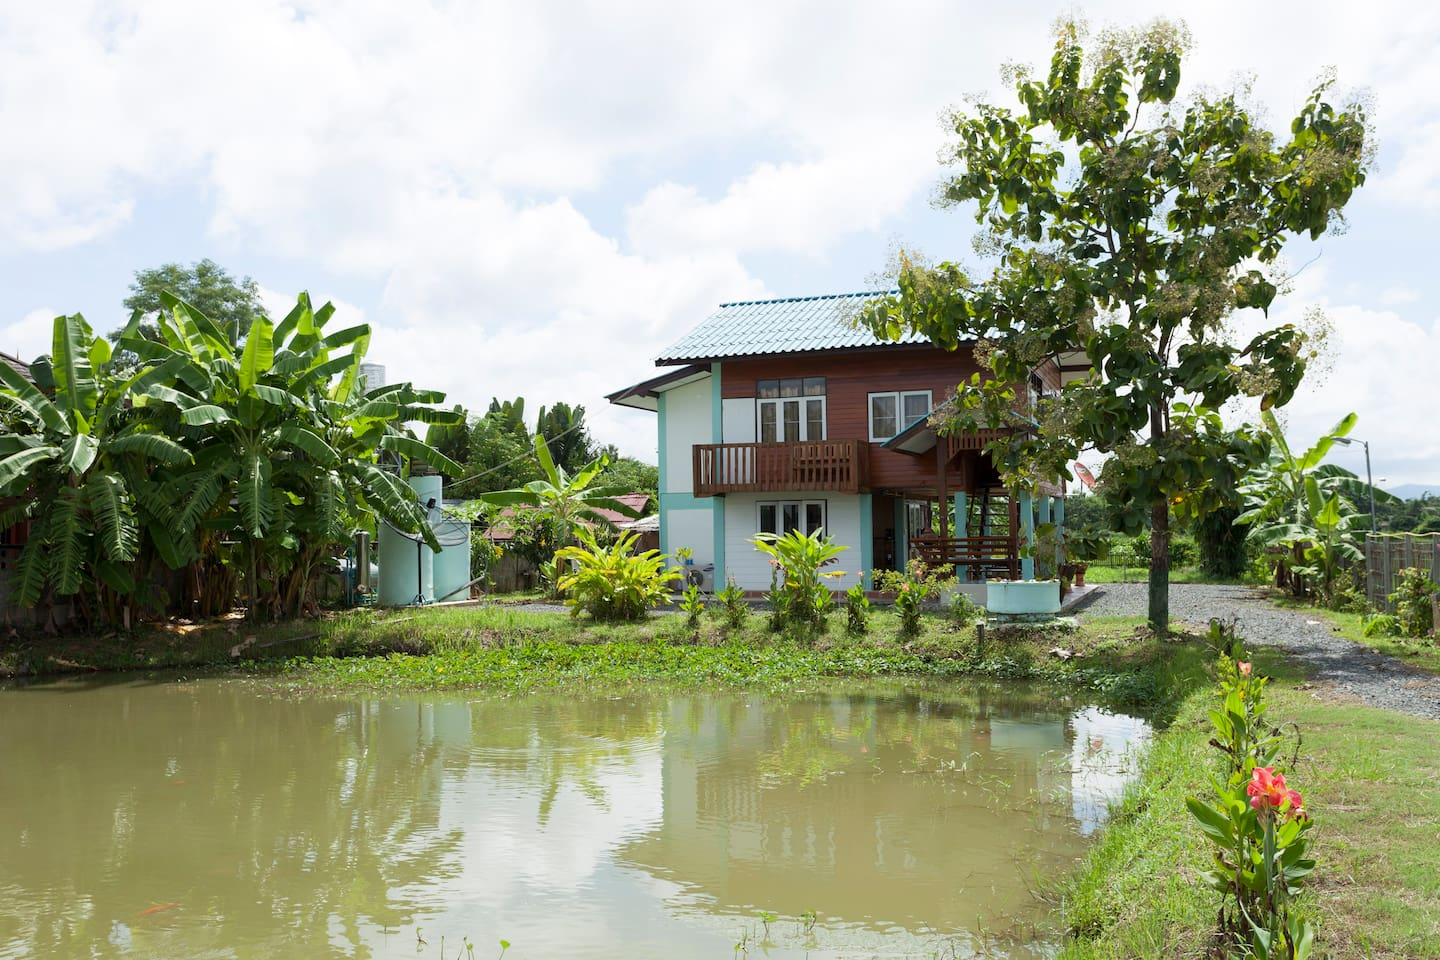 Teakhouse seen over ths fish pond